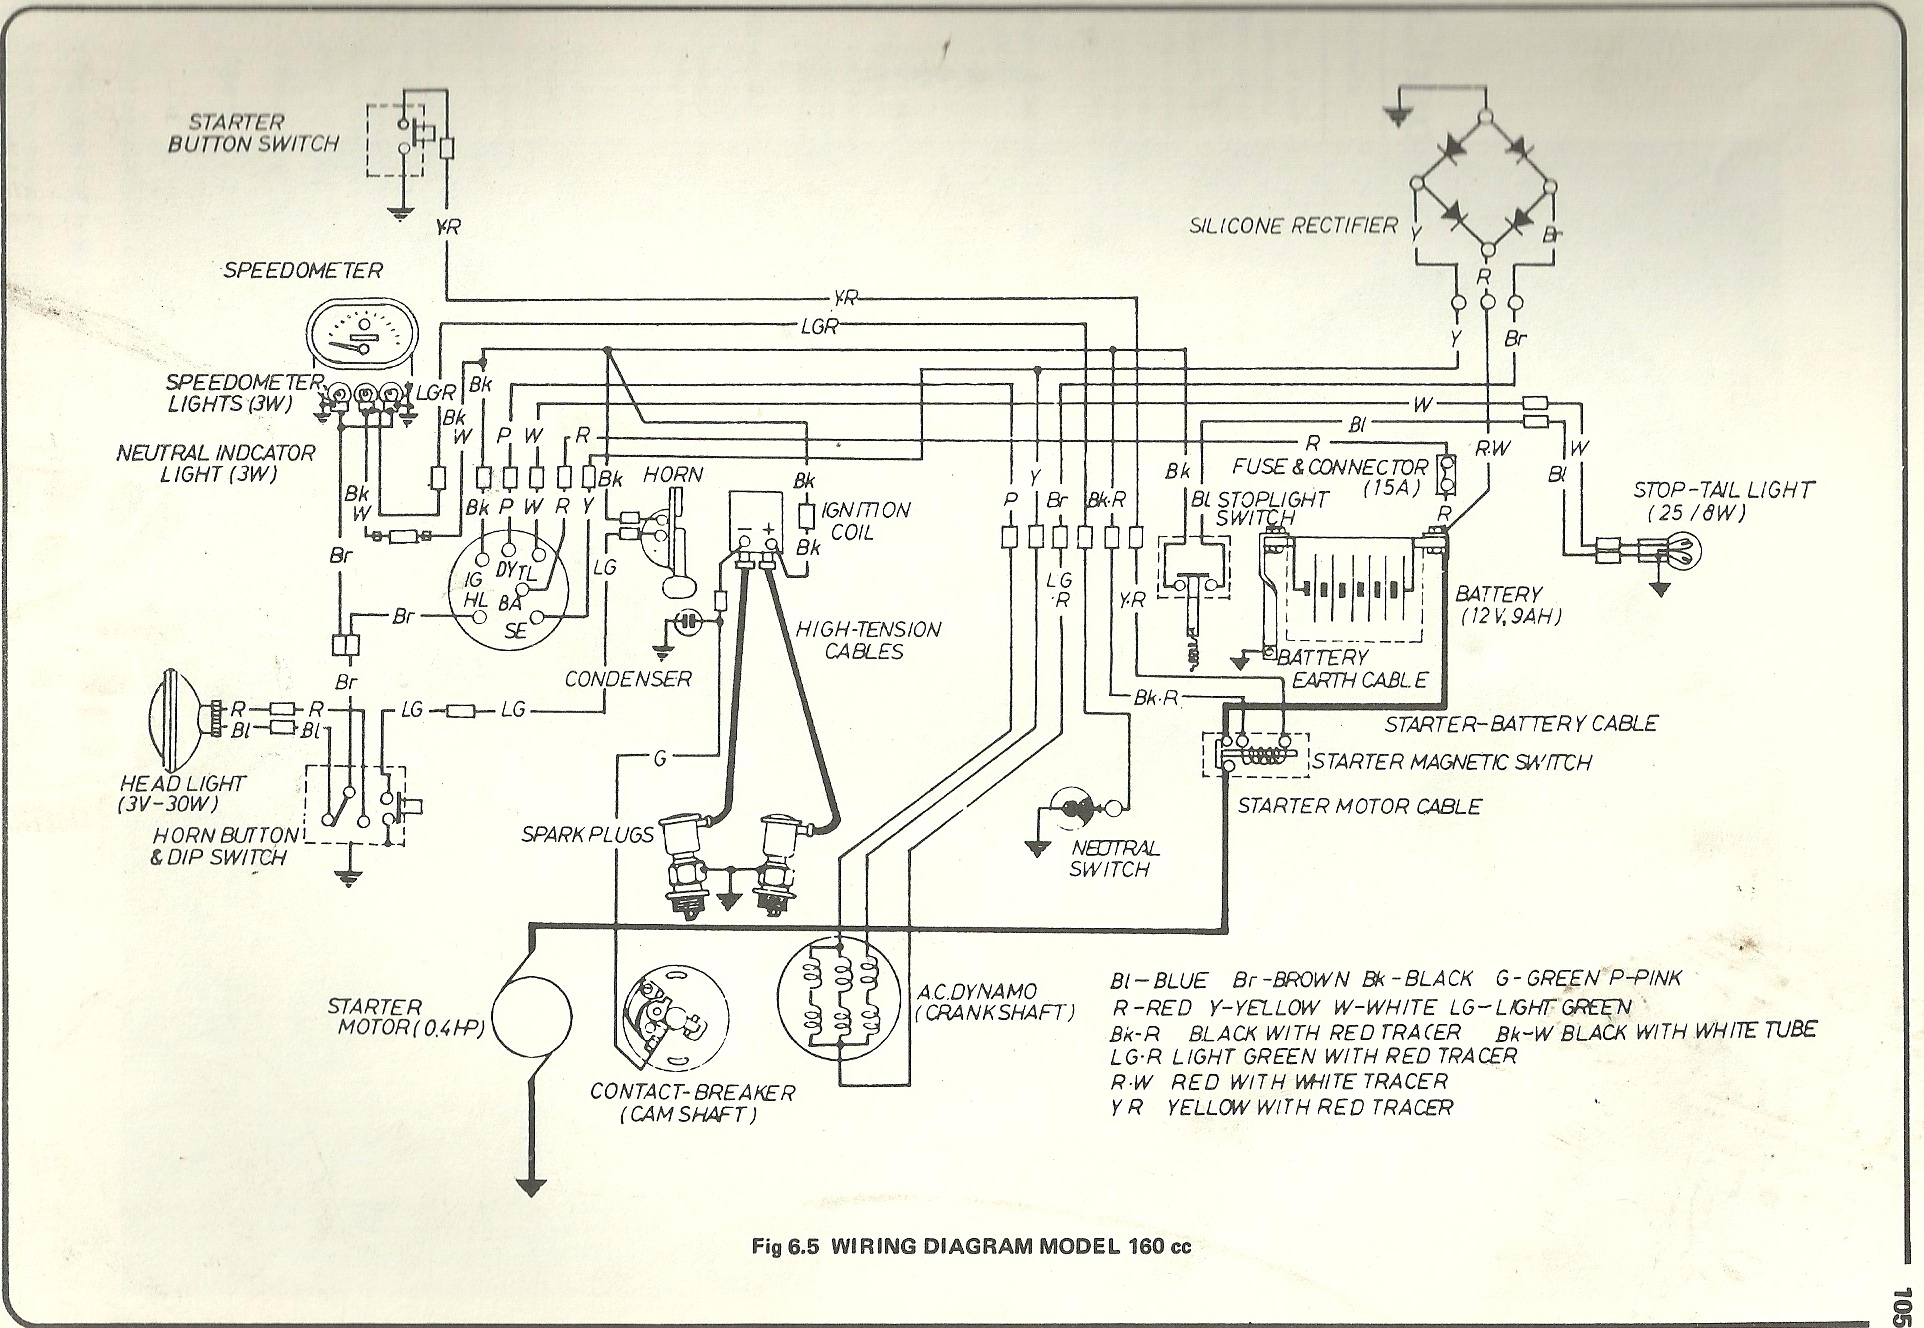 1972 suzuki t500 wiring diagram circuit wiring and diagram hub u2022 rh bdnewsmix com